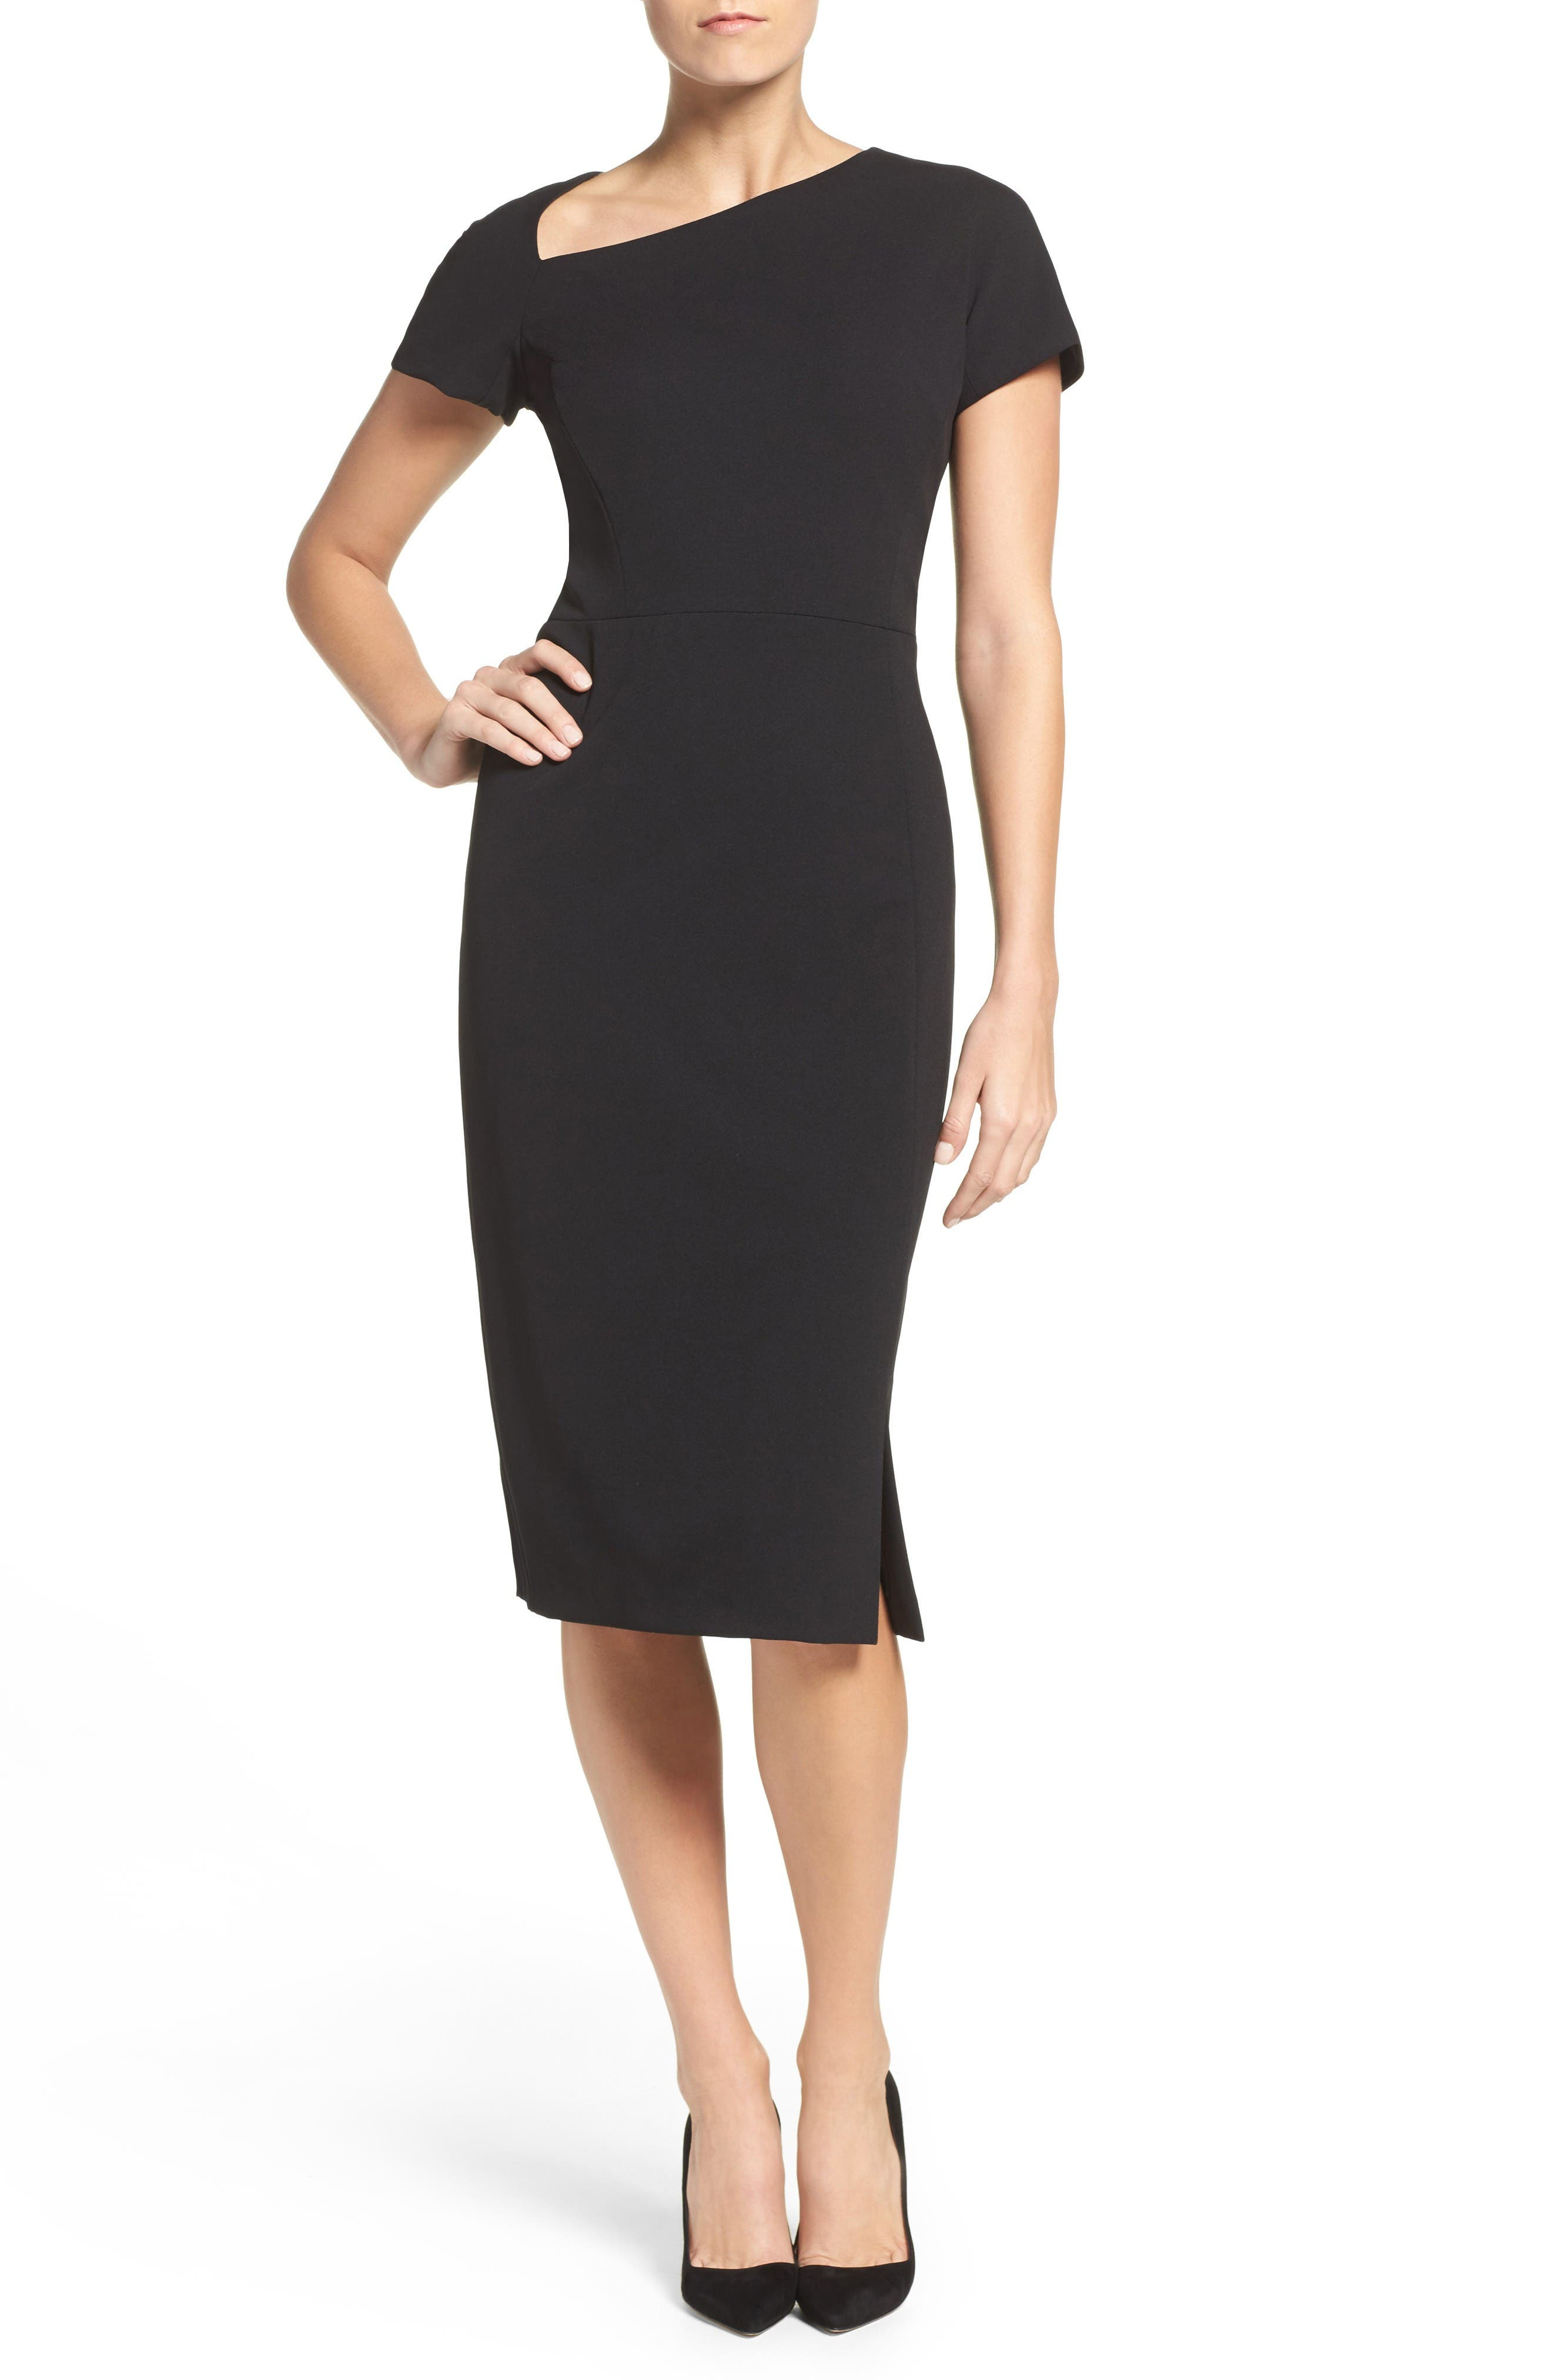 Alternate Image 1 Selected - Maggy London Asymmetrical Sheath Dress (Regular & Petite)